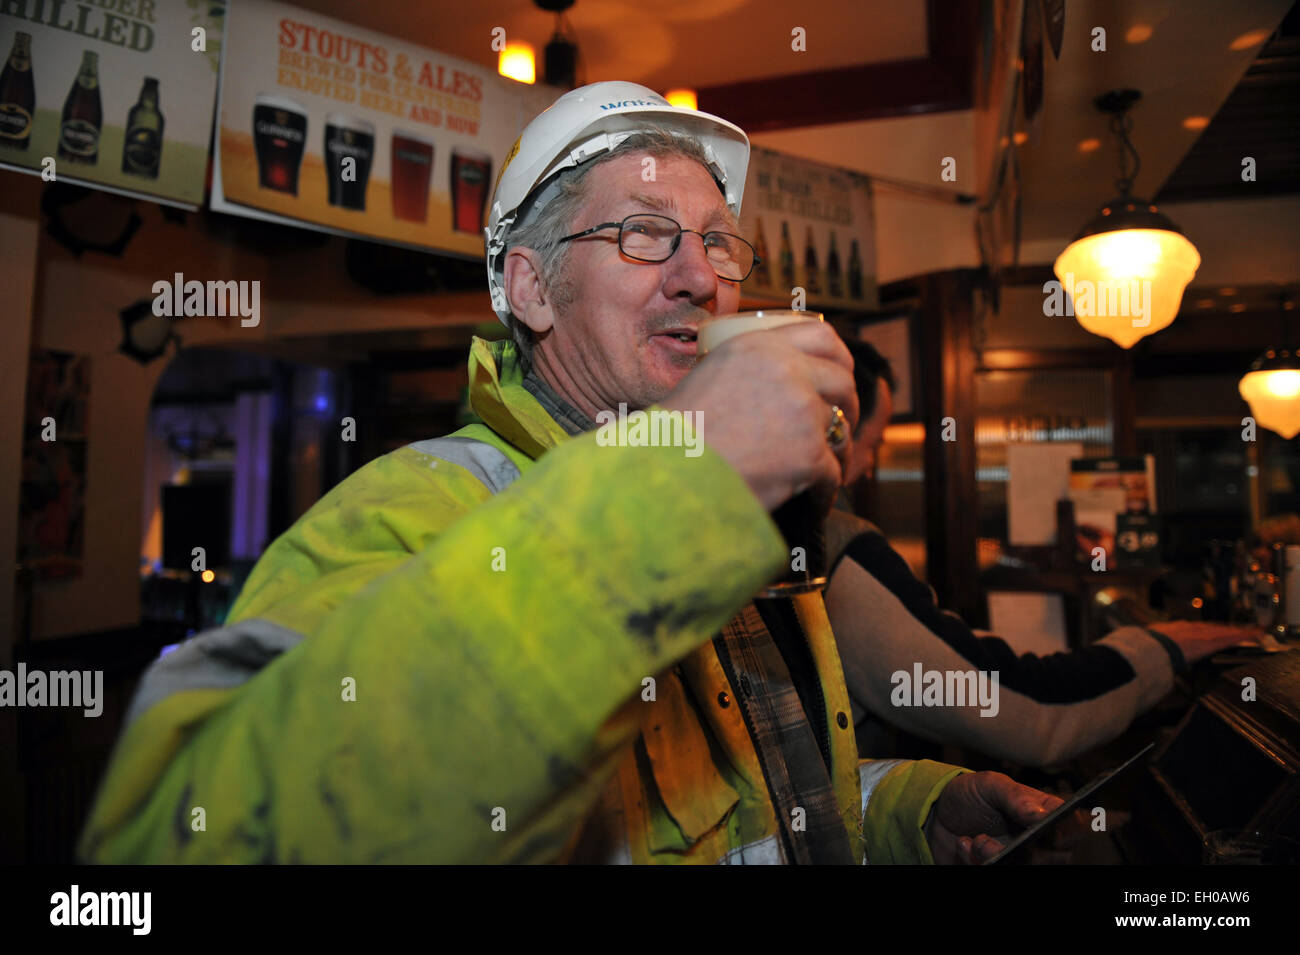 Working man enjoys a pint at the end of his shift, Yorkshire UK - Stock Image